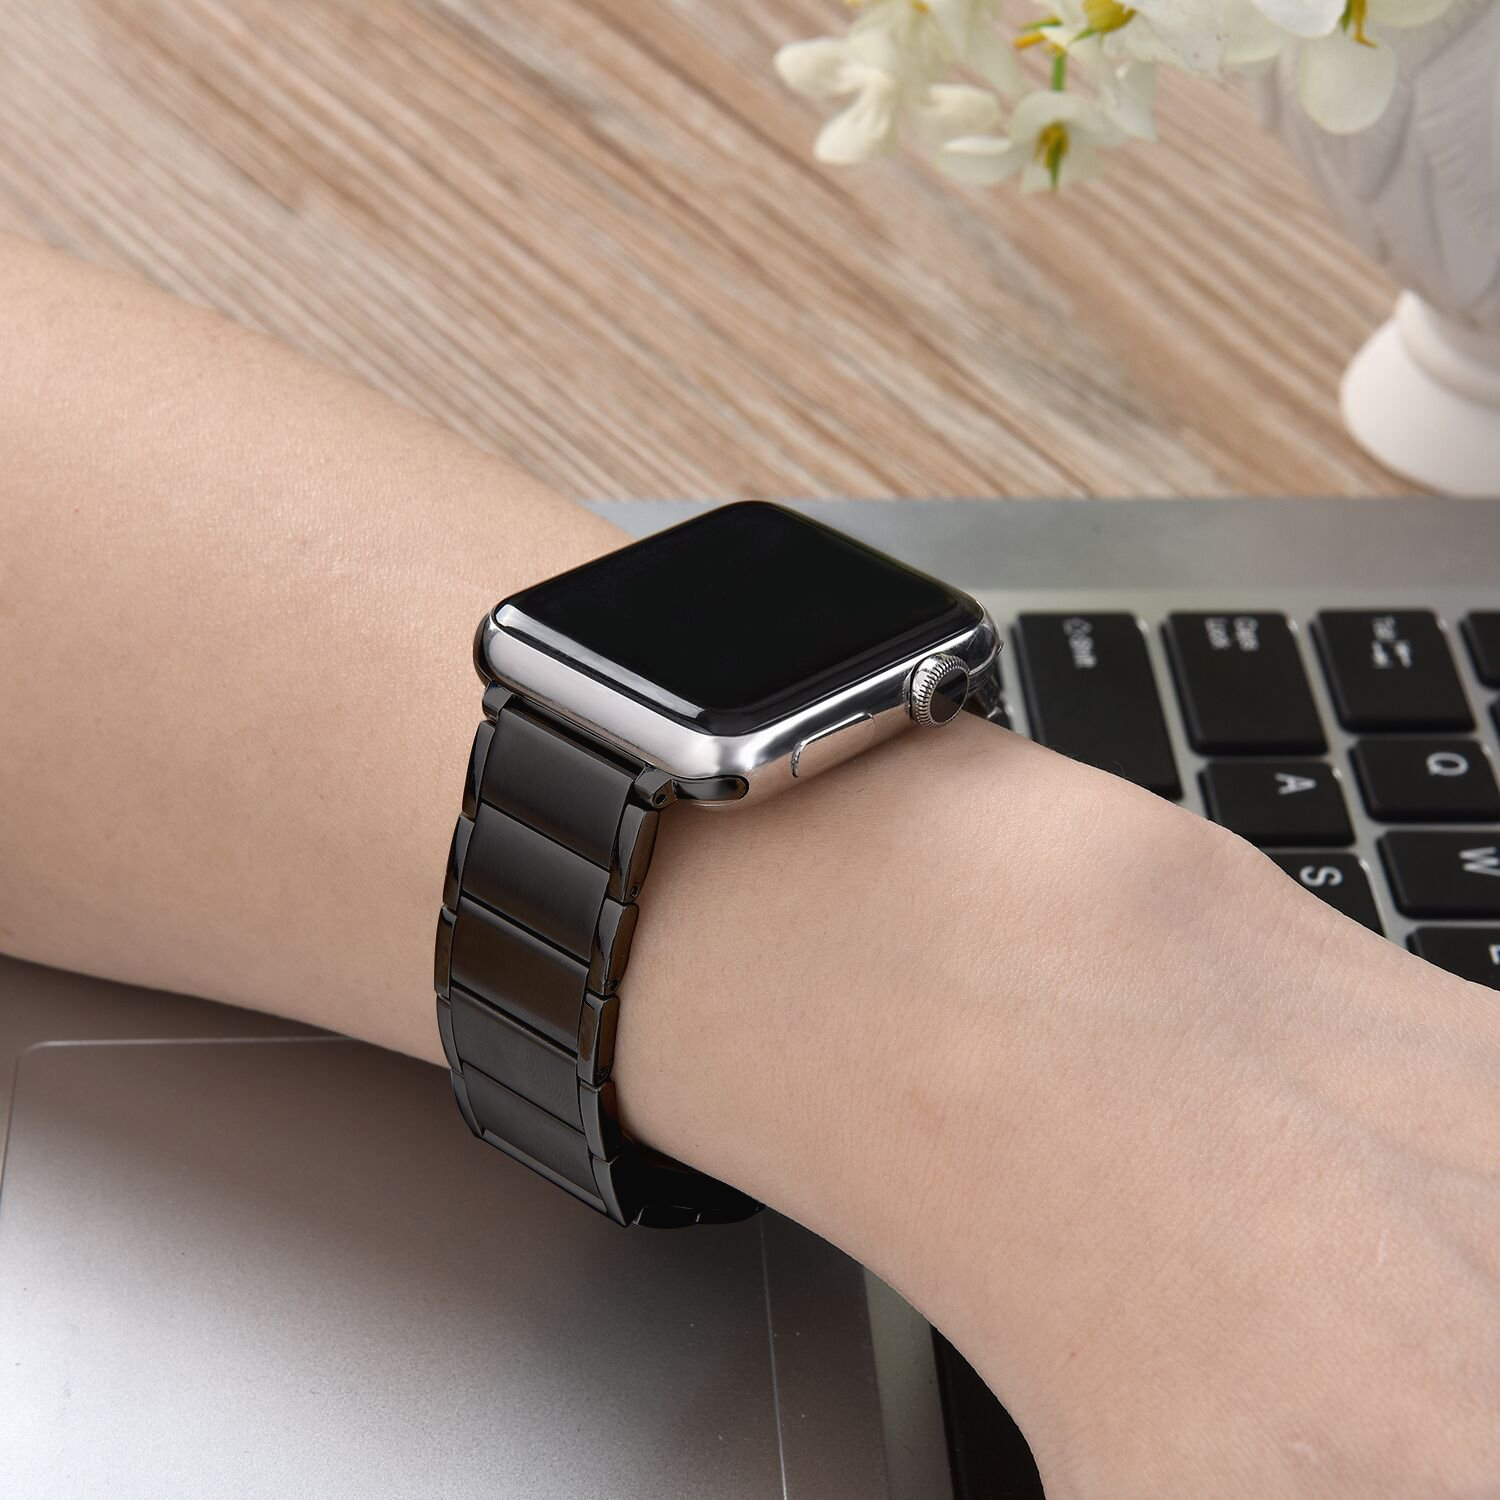 Image 2 - Stainless Steel Strap for apple watch band 38/42mm Metal Link Bracelet watch Strap for apple watch 4 band 40mm Series 1 2 3 44mm-in Watchbands from Watches